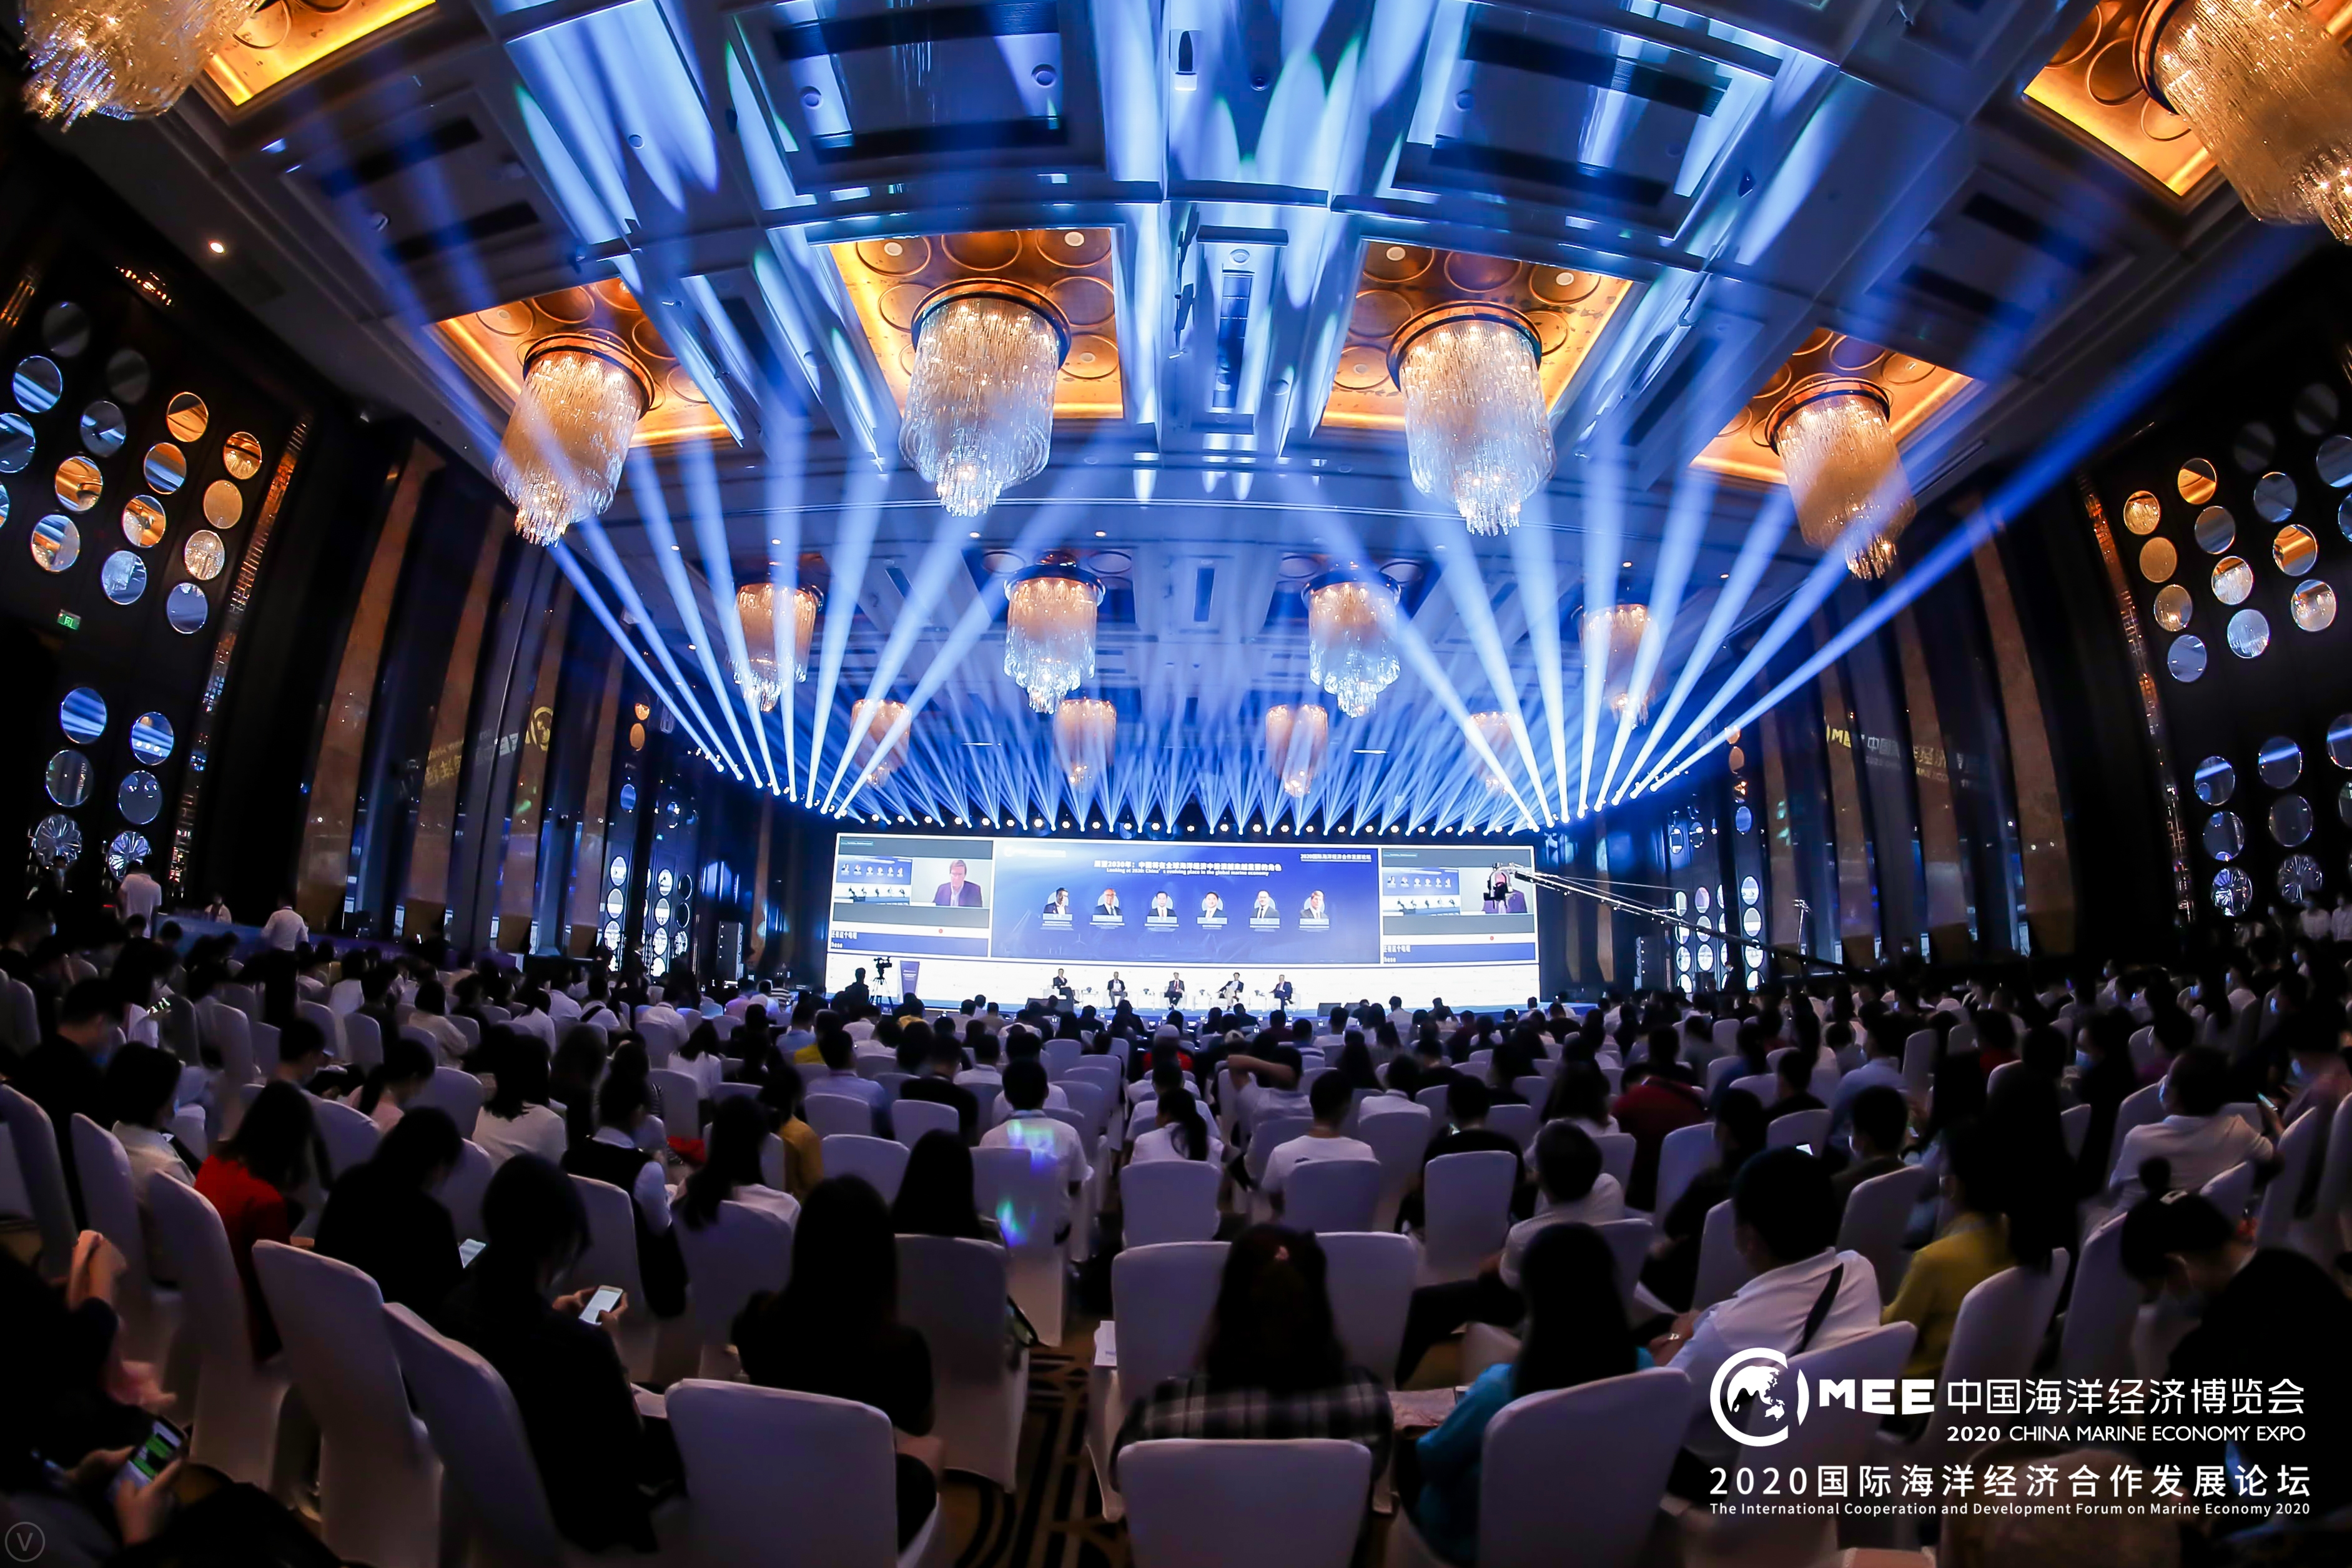 Representatives of global marine-related companies gathered at the CMEE in Shenzhen to discuss the future of the marine economy in the post-Covid context